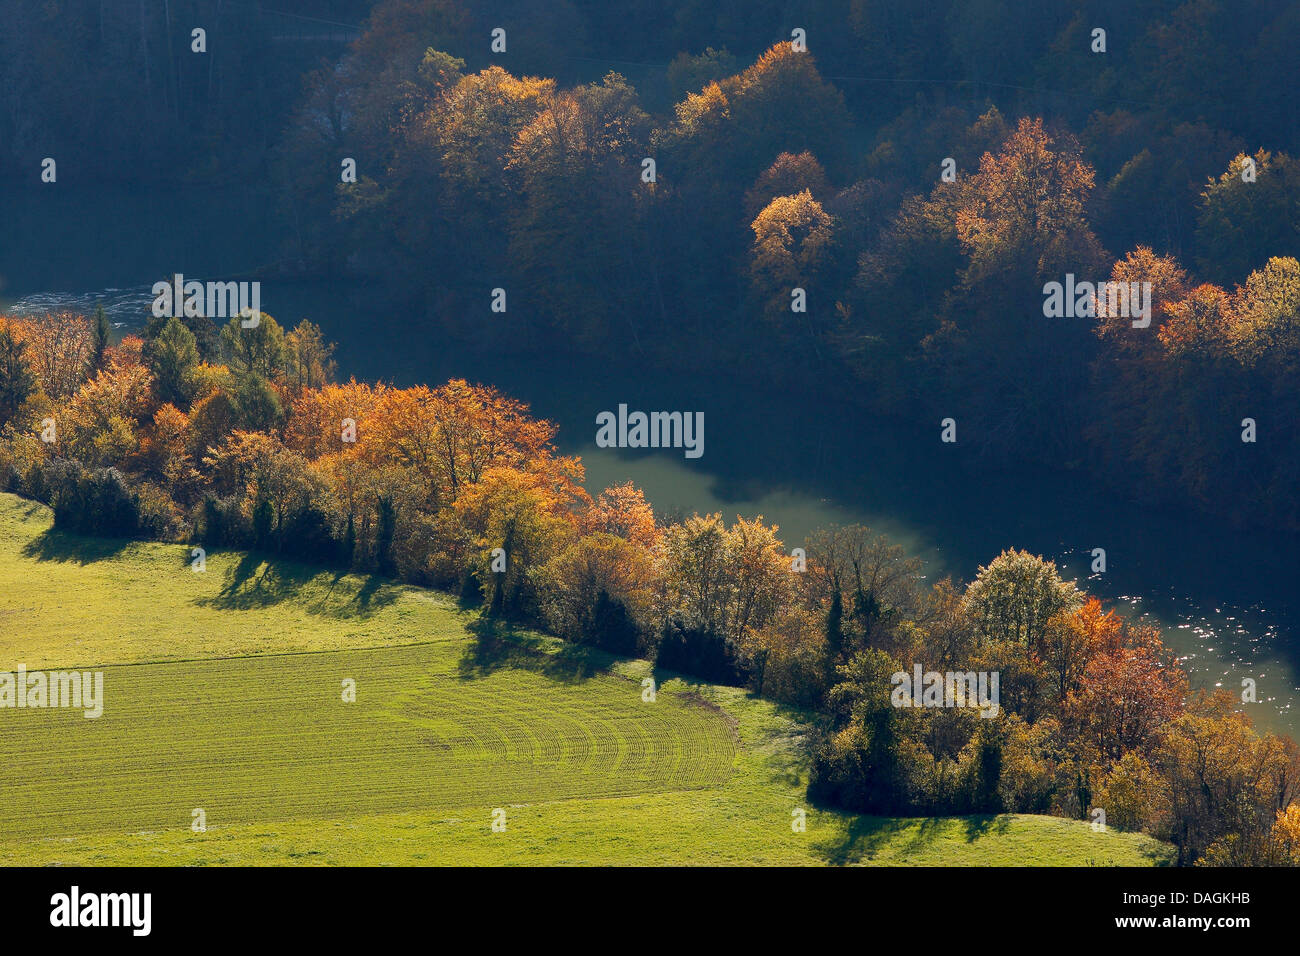 autumn trees on the riverbank, France, Aiguilles d'Arves - Stock Image